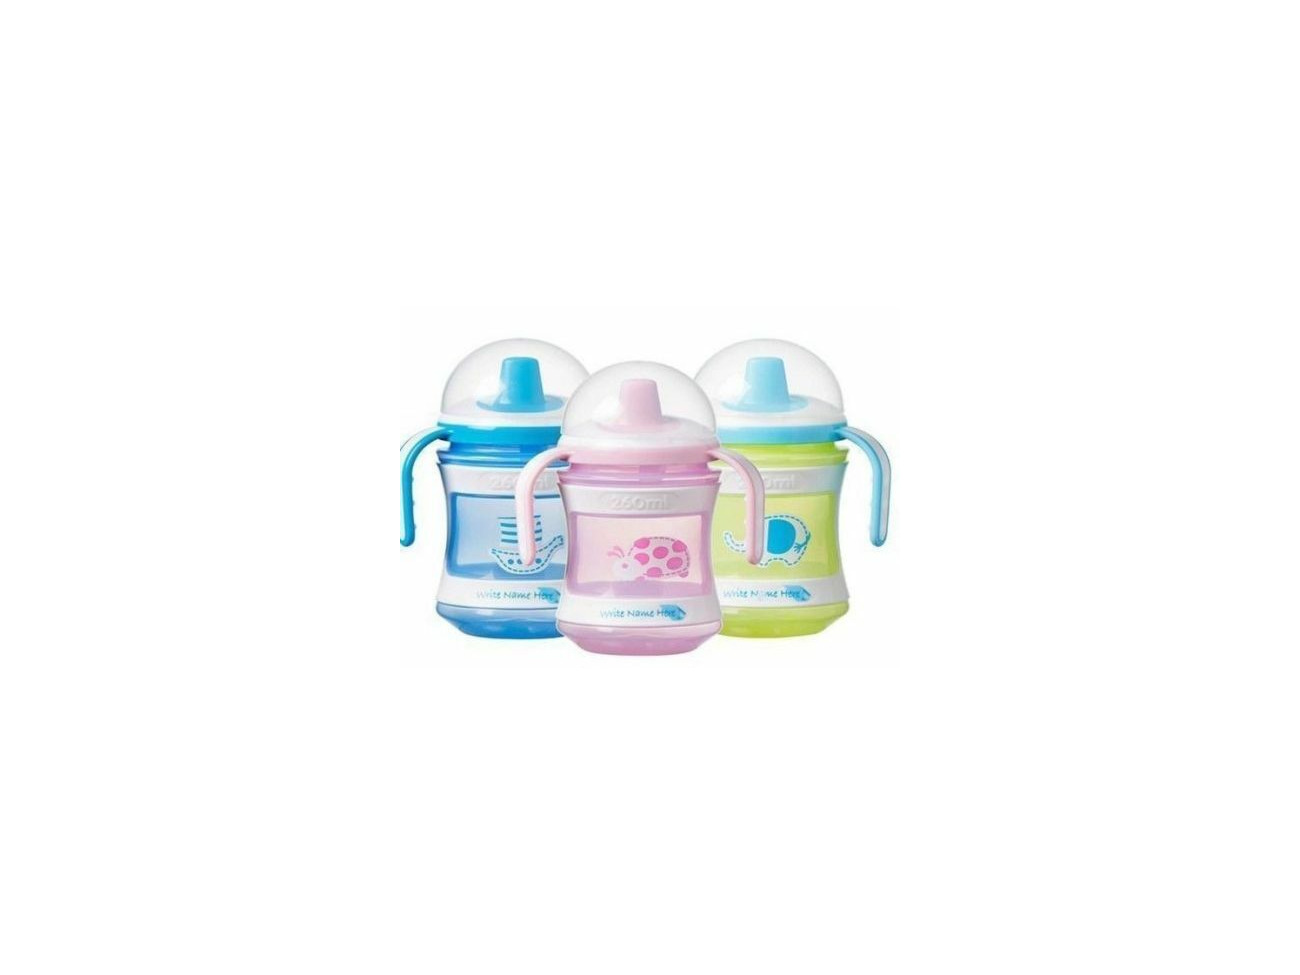 2 x TOMMEE TIPPEE Pink Pear 0-6 month Anytime Silicone Orthodontic Baby Soother